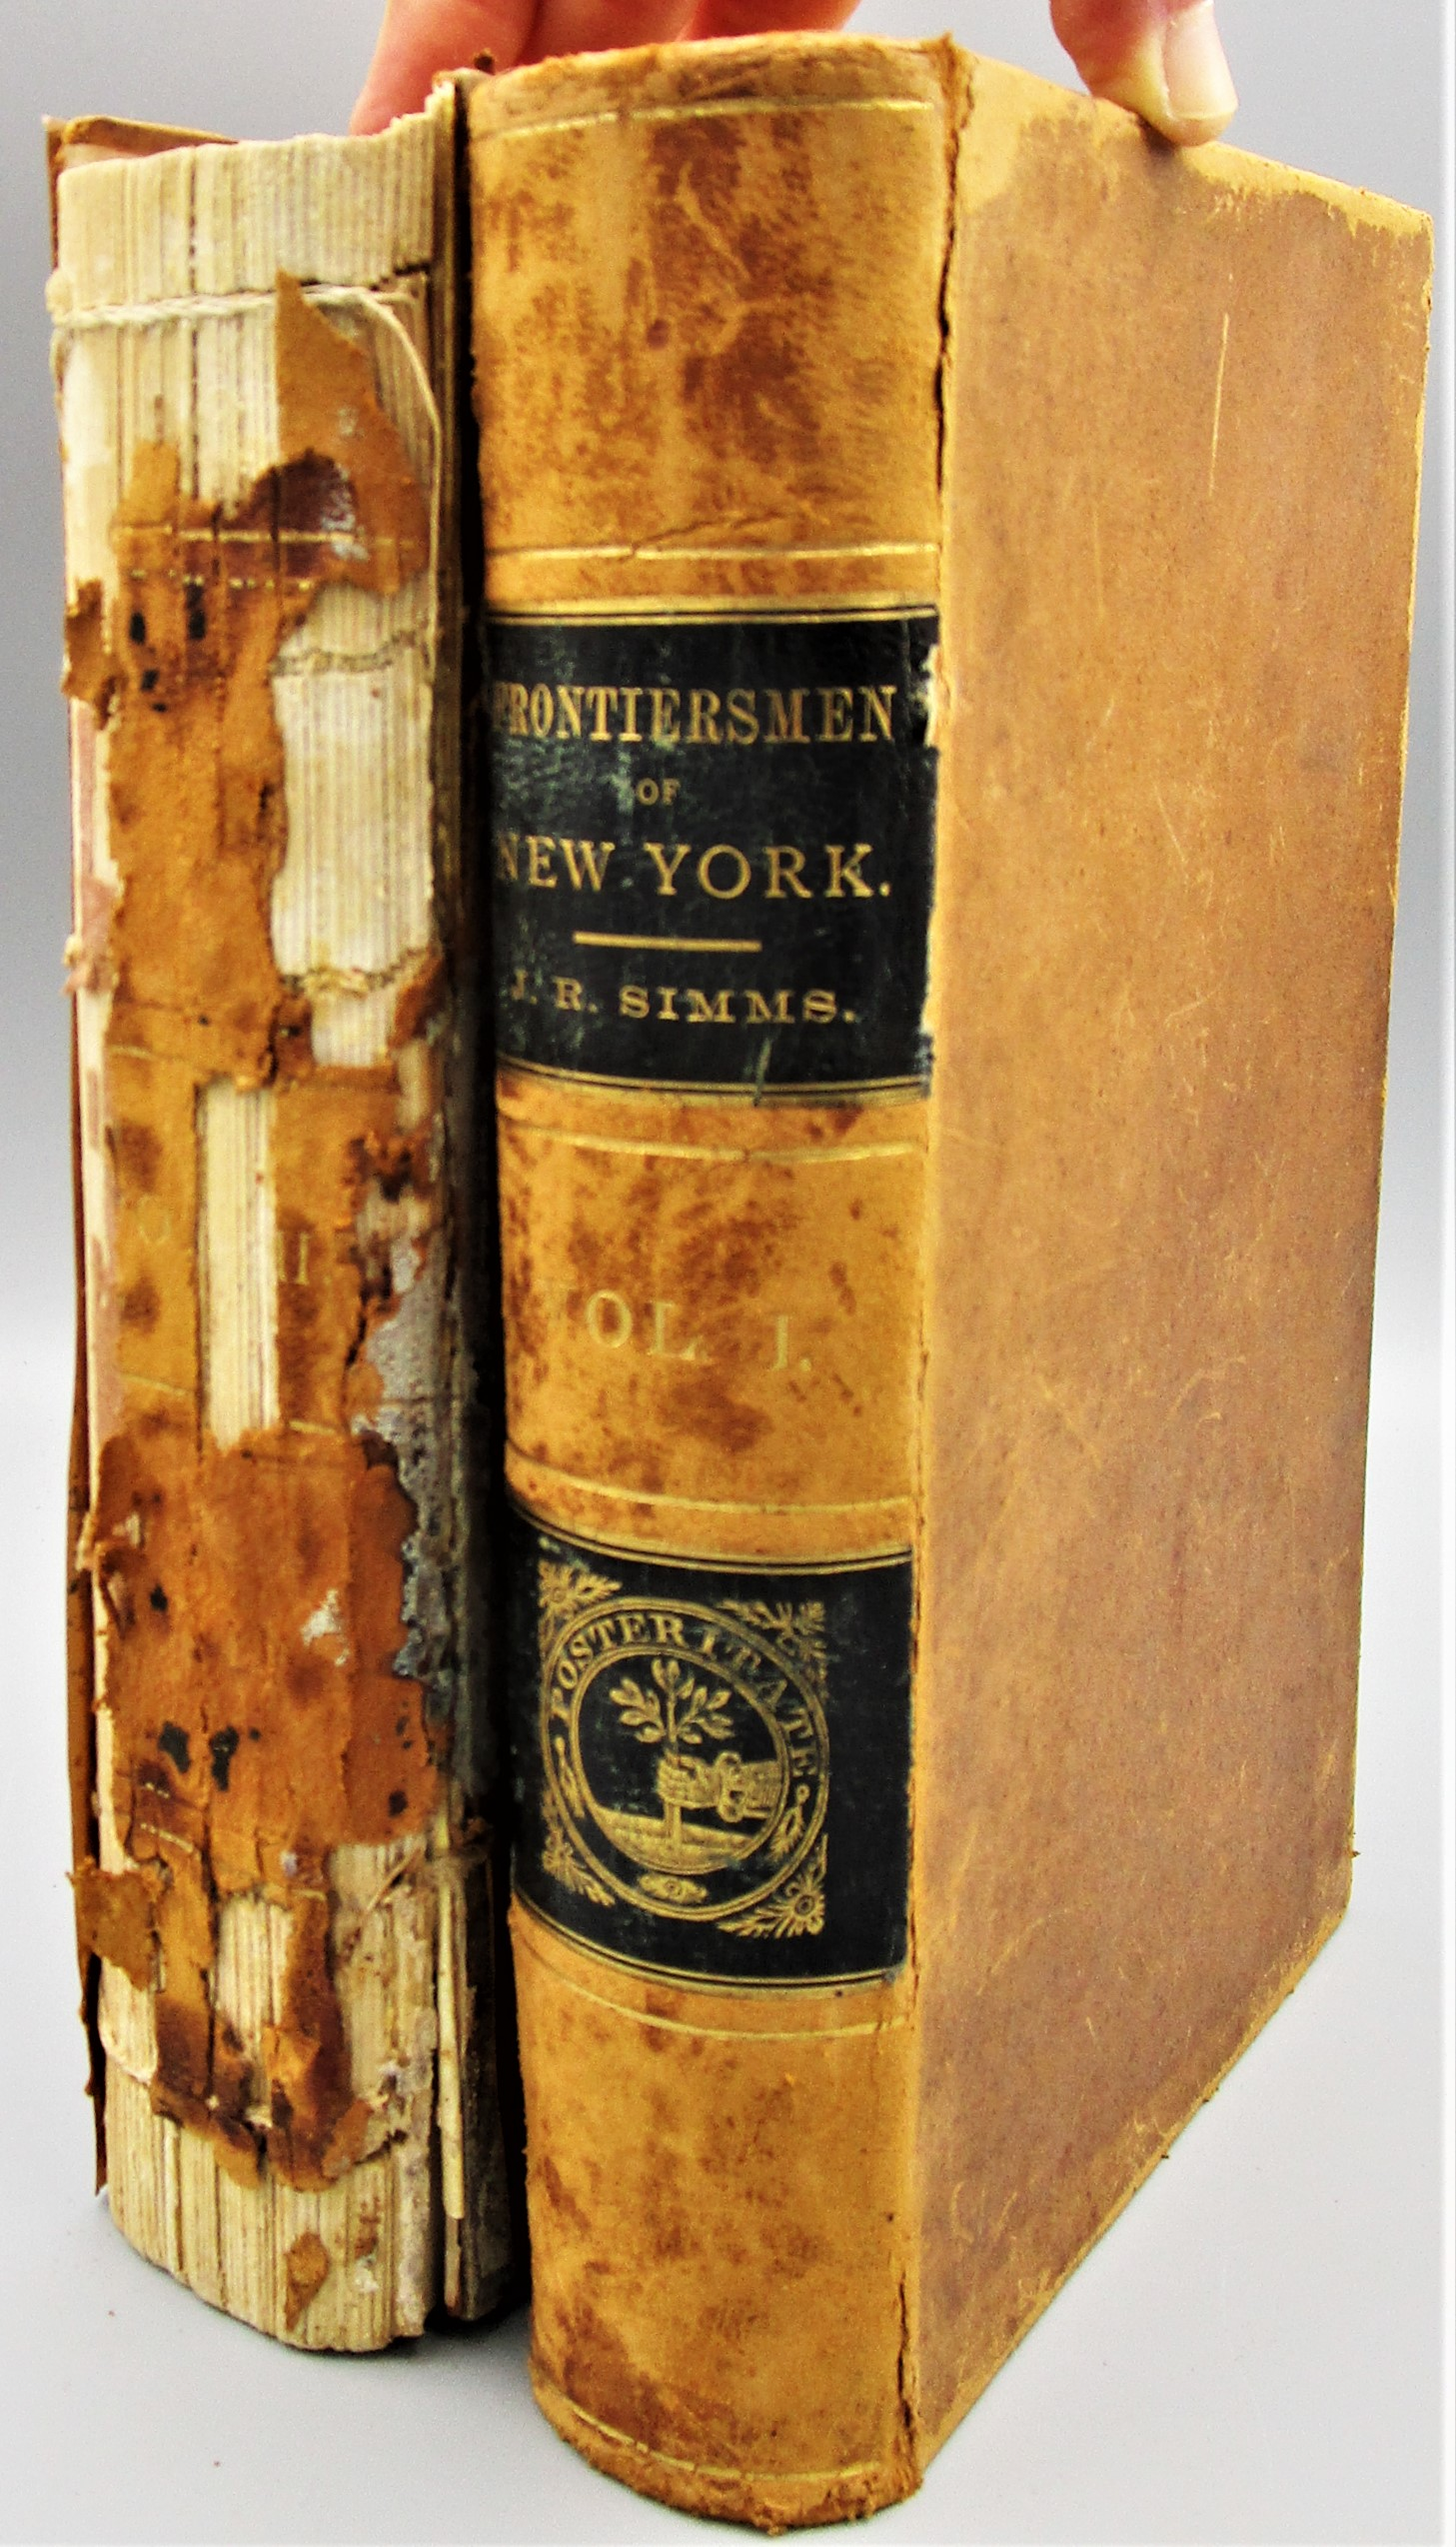 THE FRONTIERSMEN OF NEW YORK, by Jeptha R. Simms - 1882 [1st Ed, 2 Vols]